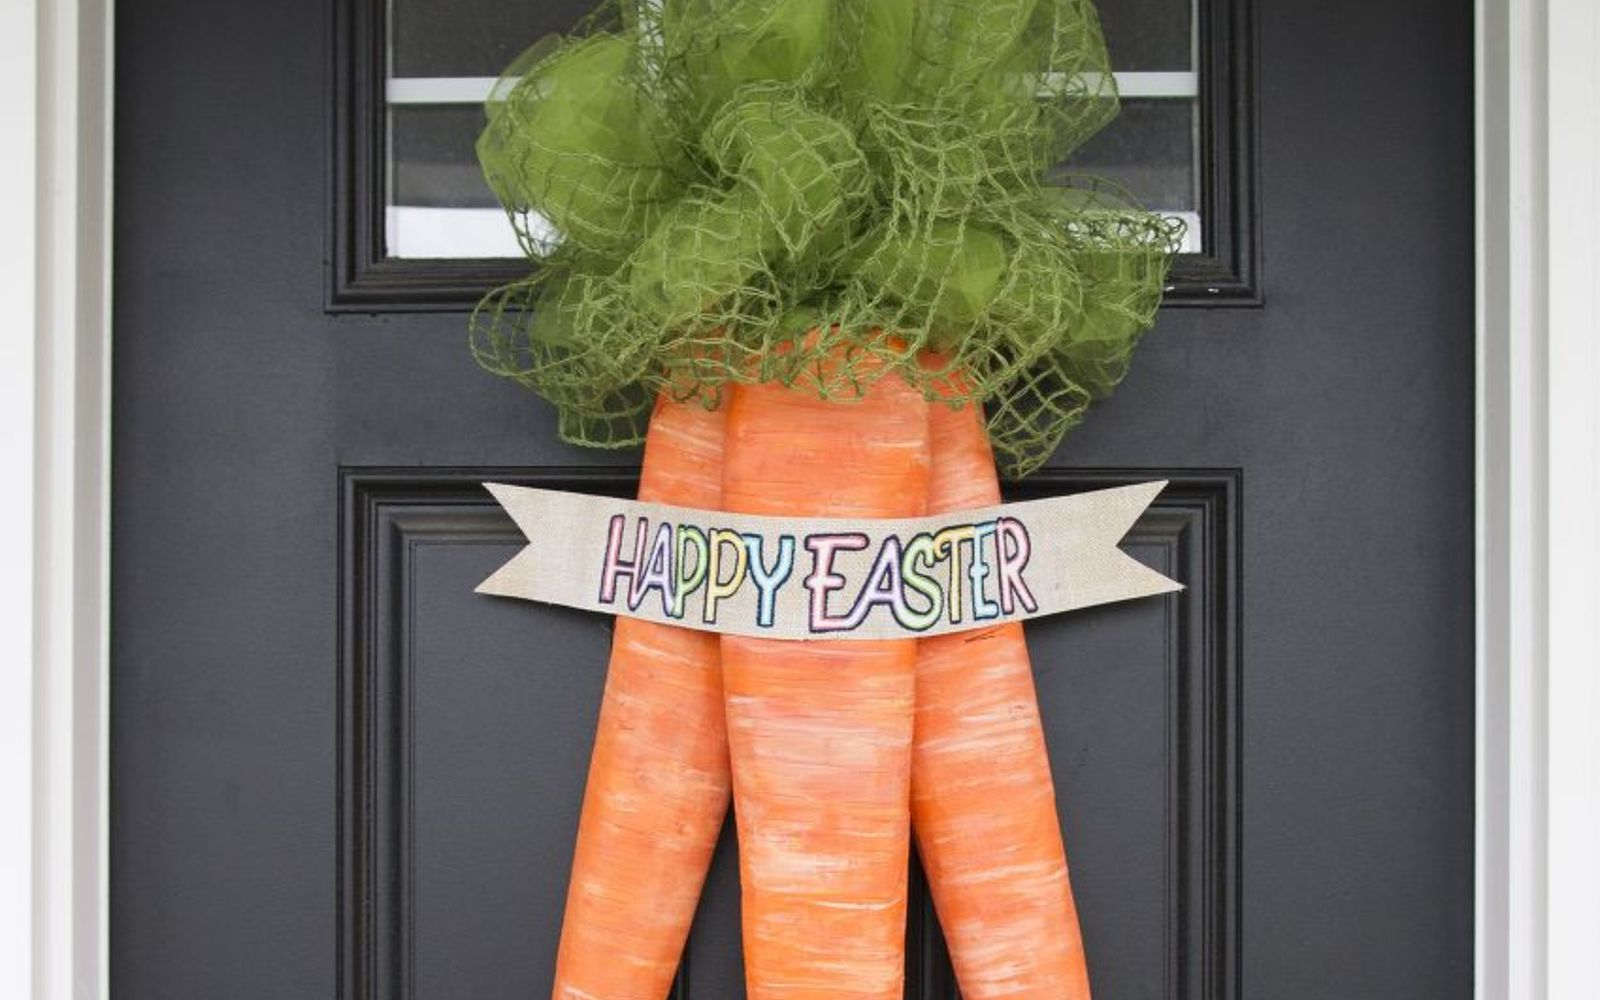 s 31 gorgeous spring wreaths that will make your neighbors smile, crafts, seasonal holiday decor, wreaths, Carve foam core into a carrot bunch